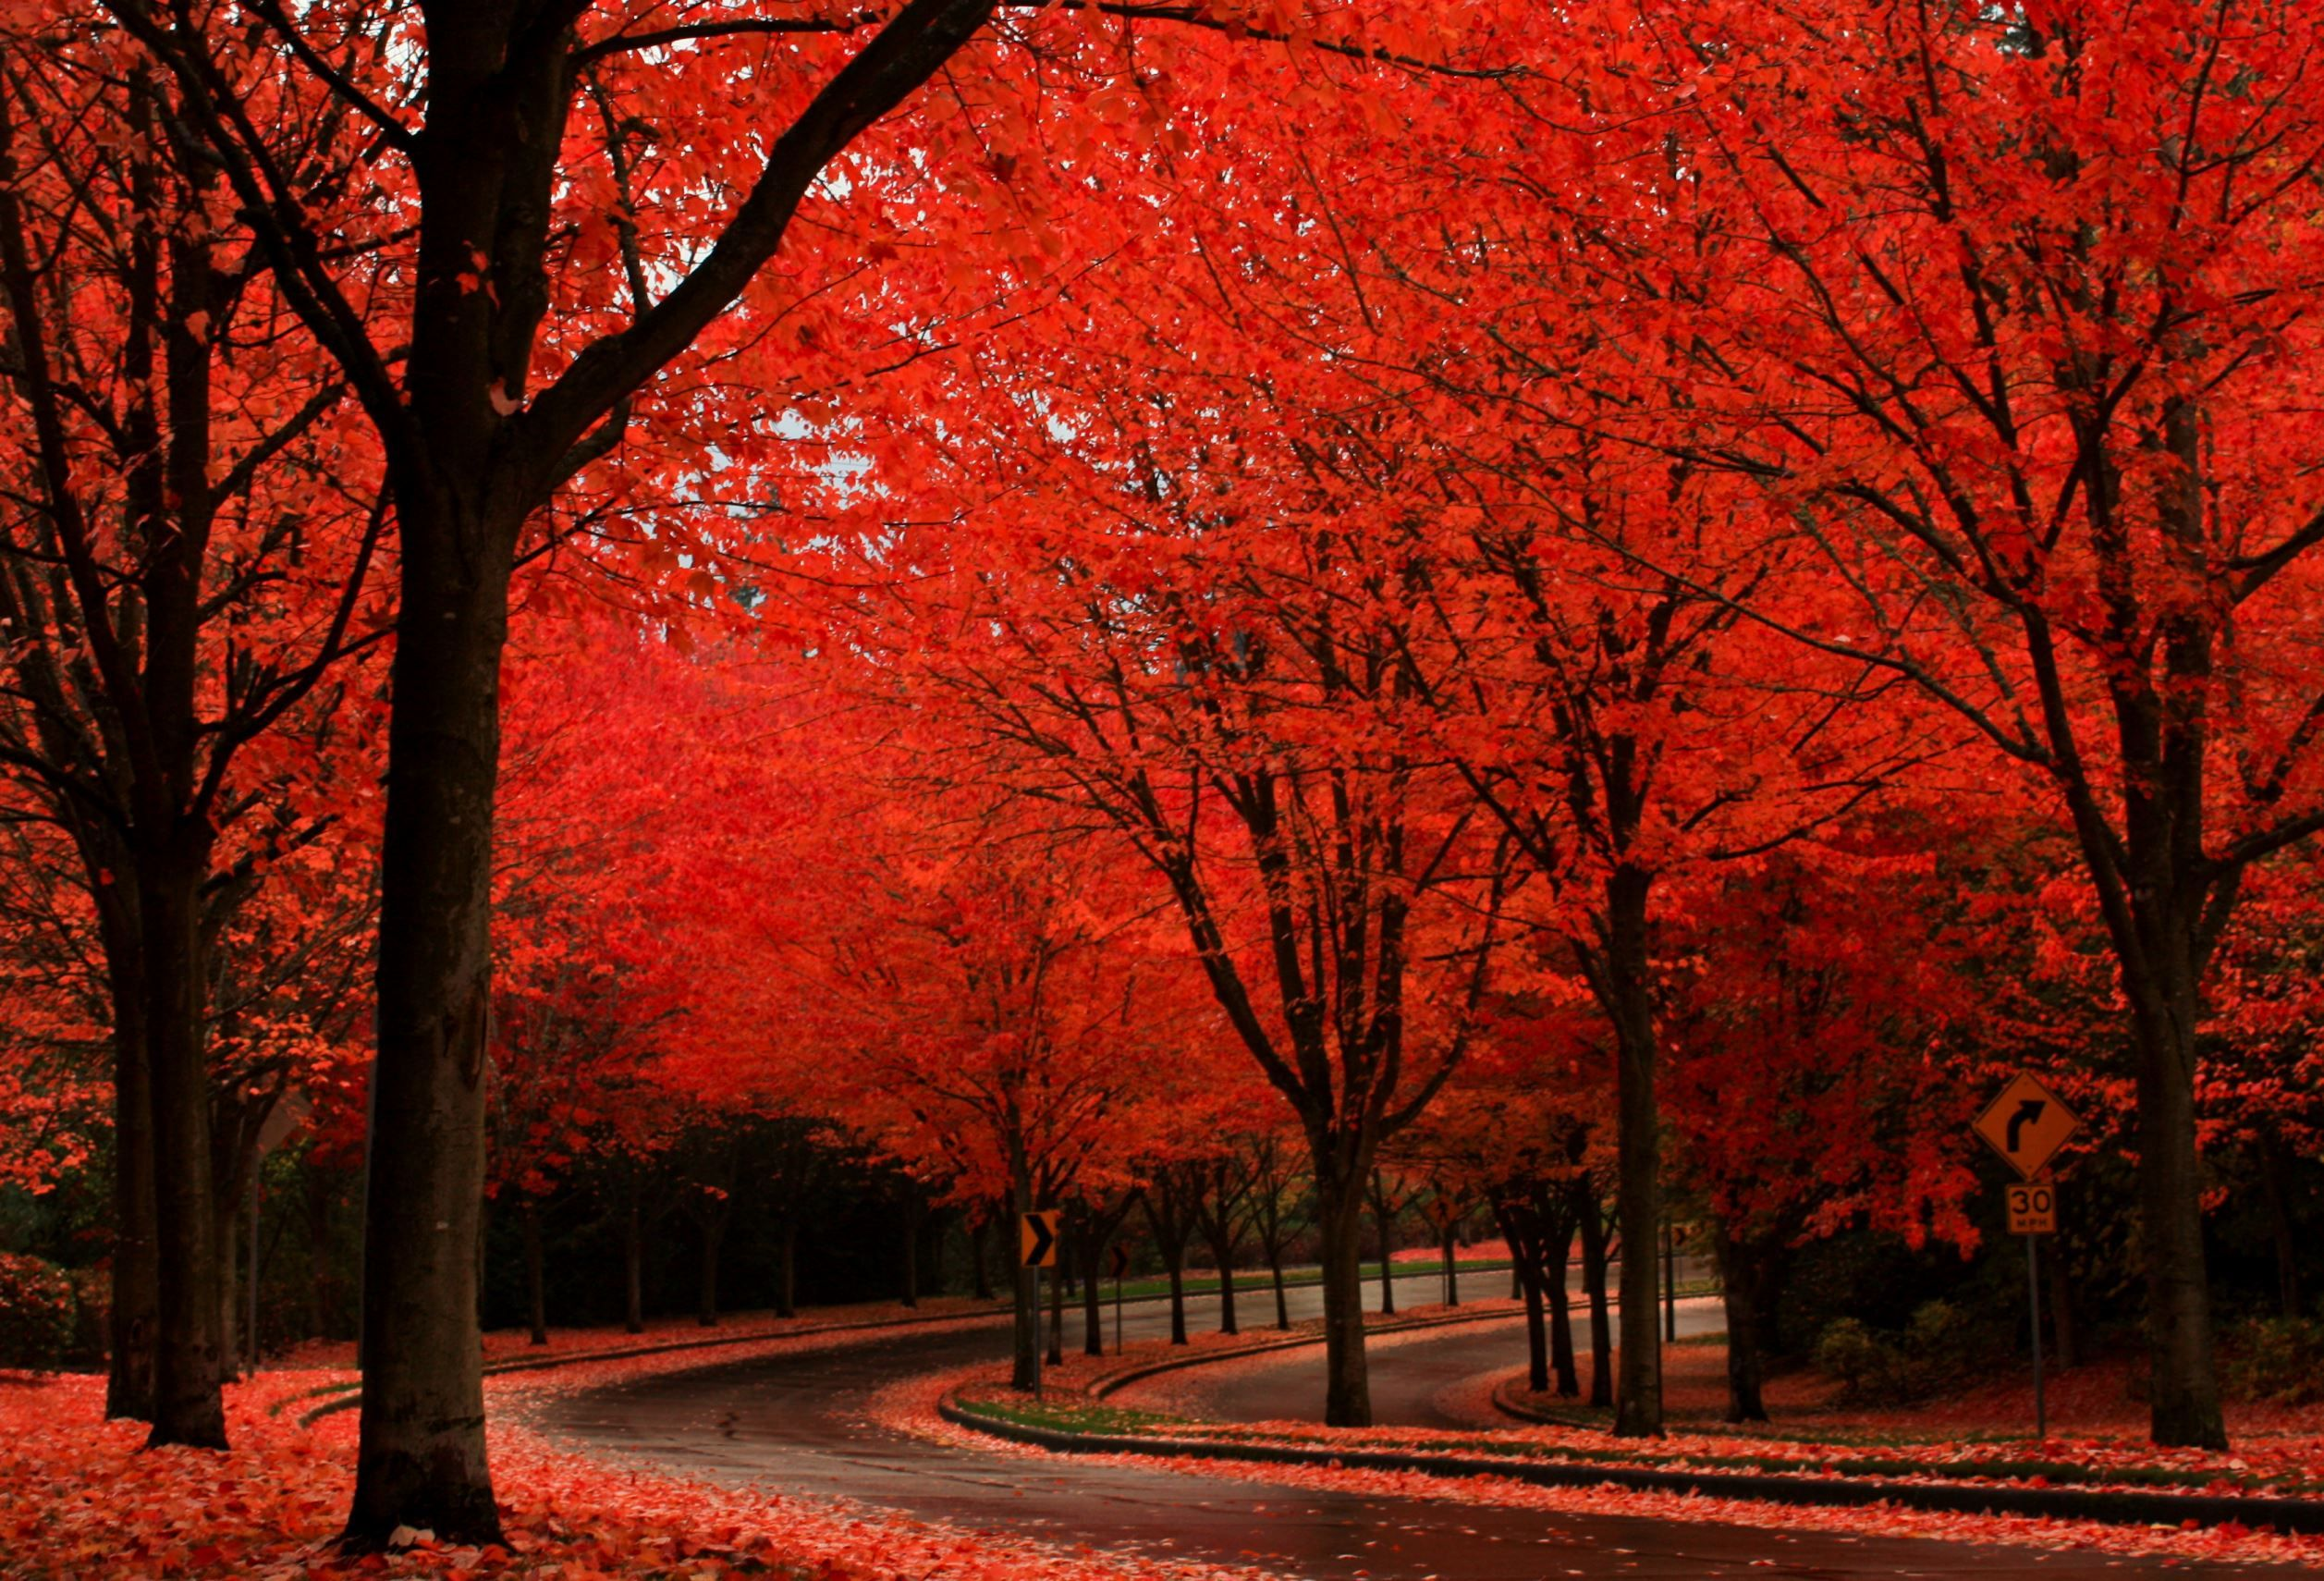 Tree tunnels around the world maple trees portland - Decorative trees with red leaves amazing contrasts ...